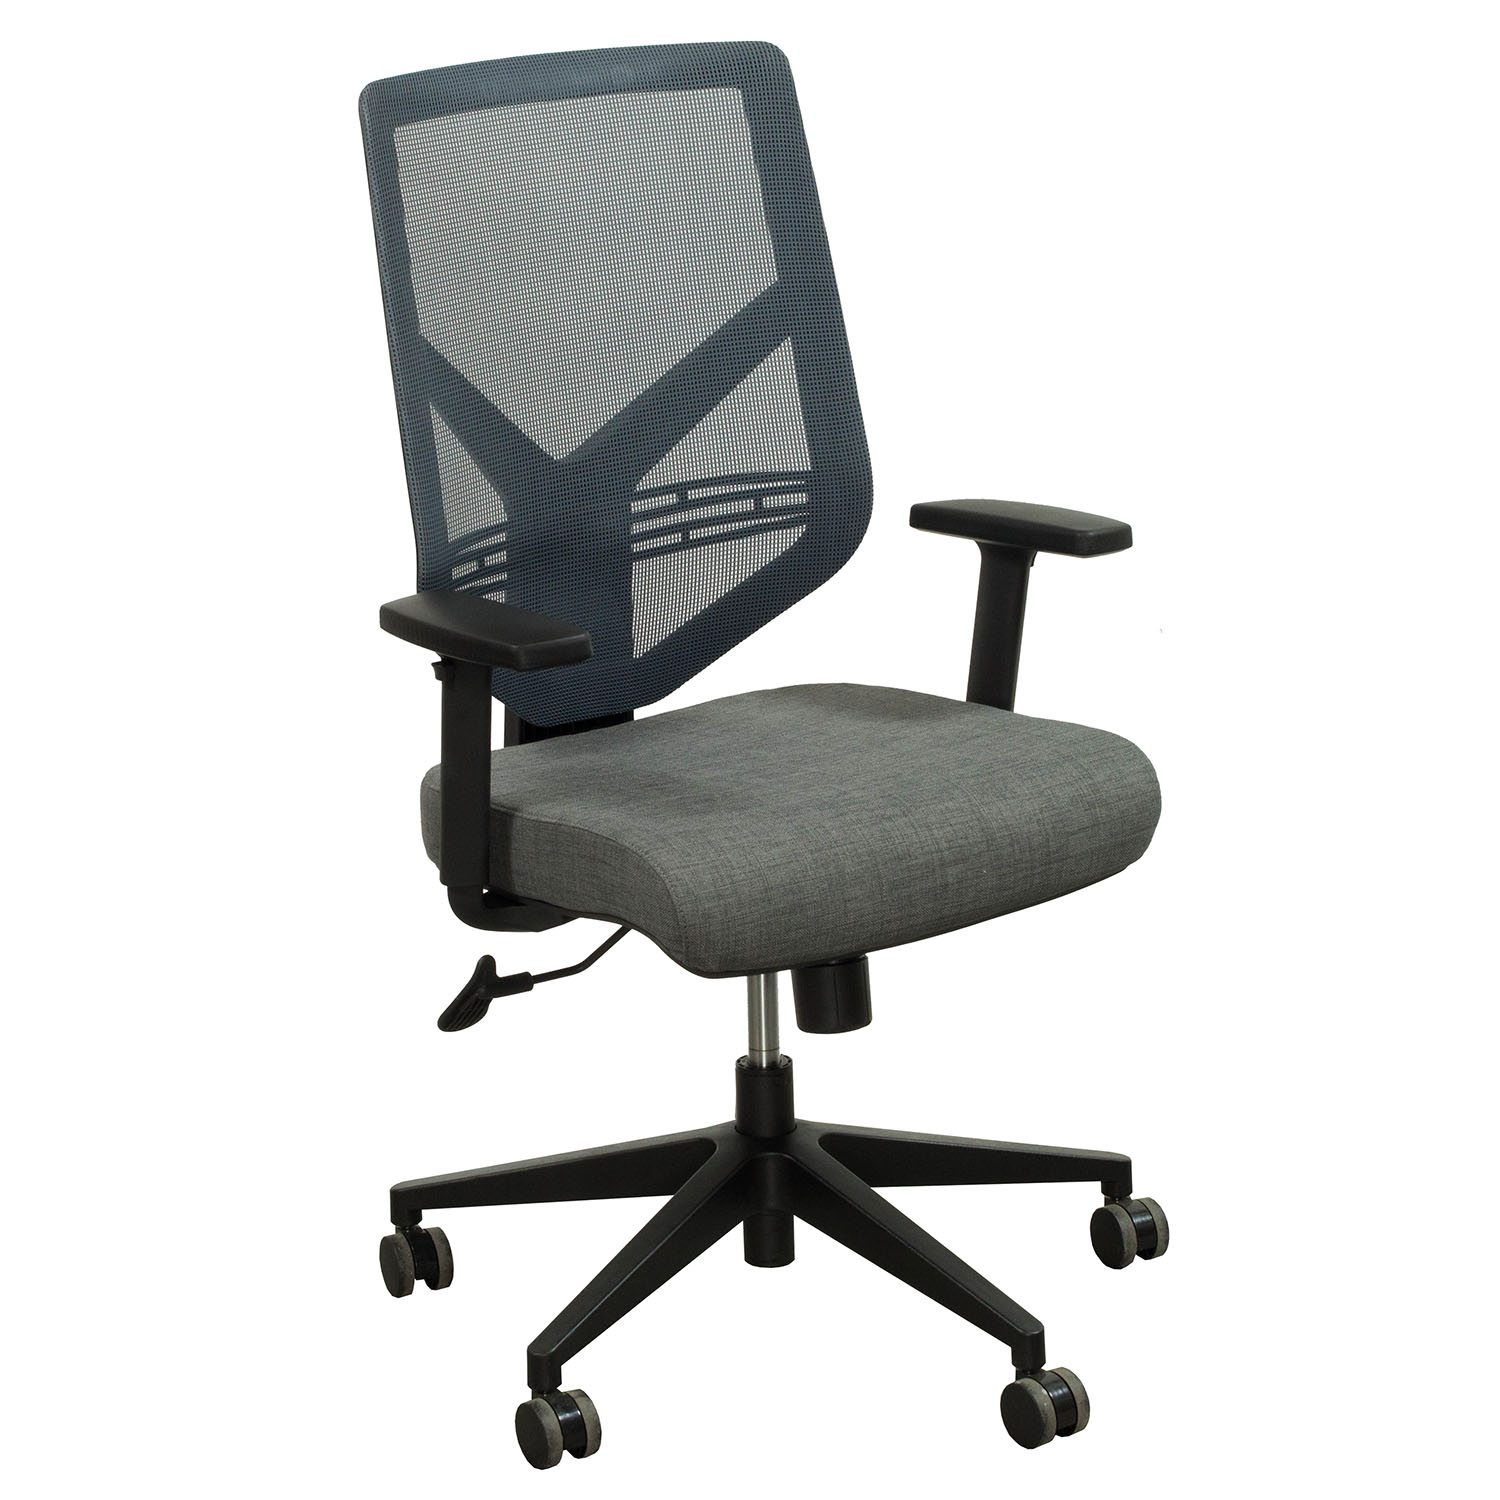 mesh task chair heavy duty resin chairs gosit back gray national office